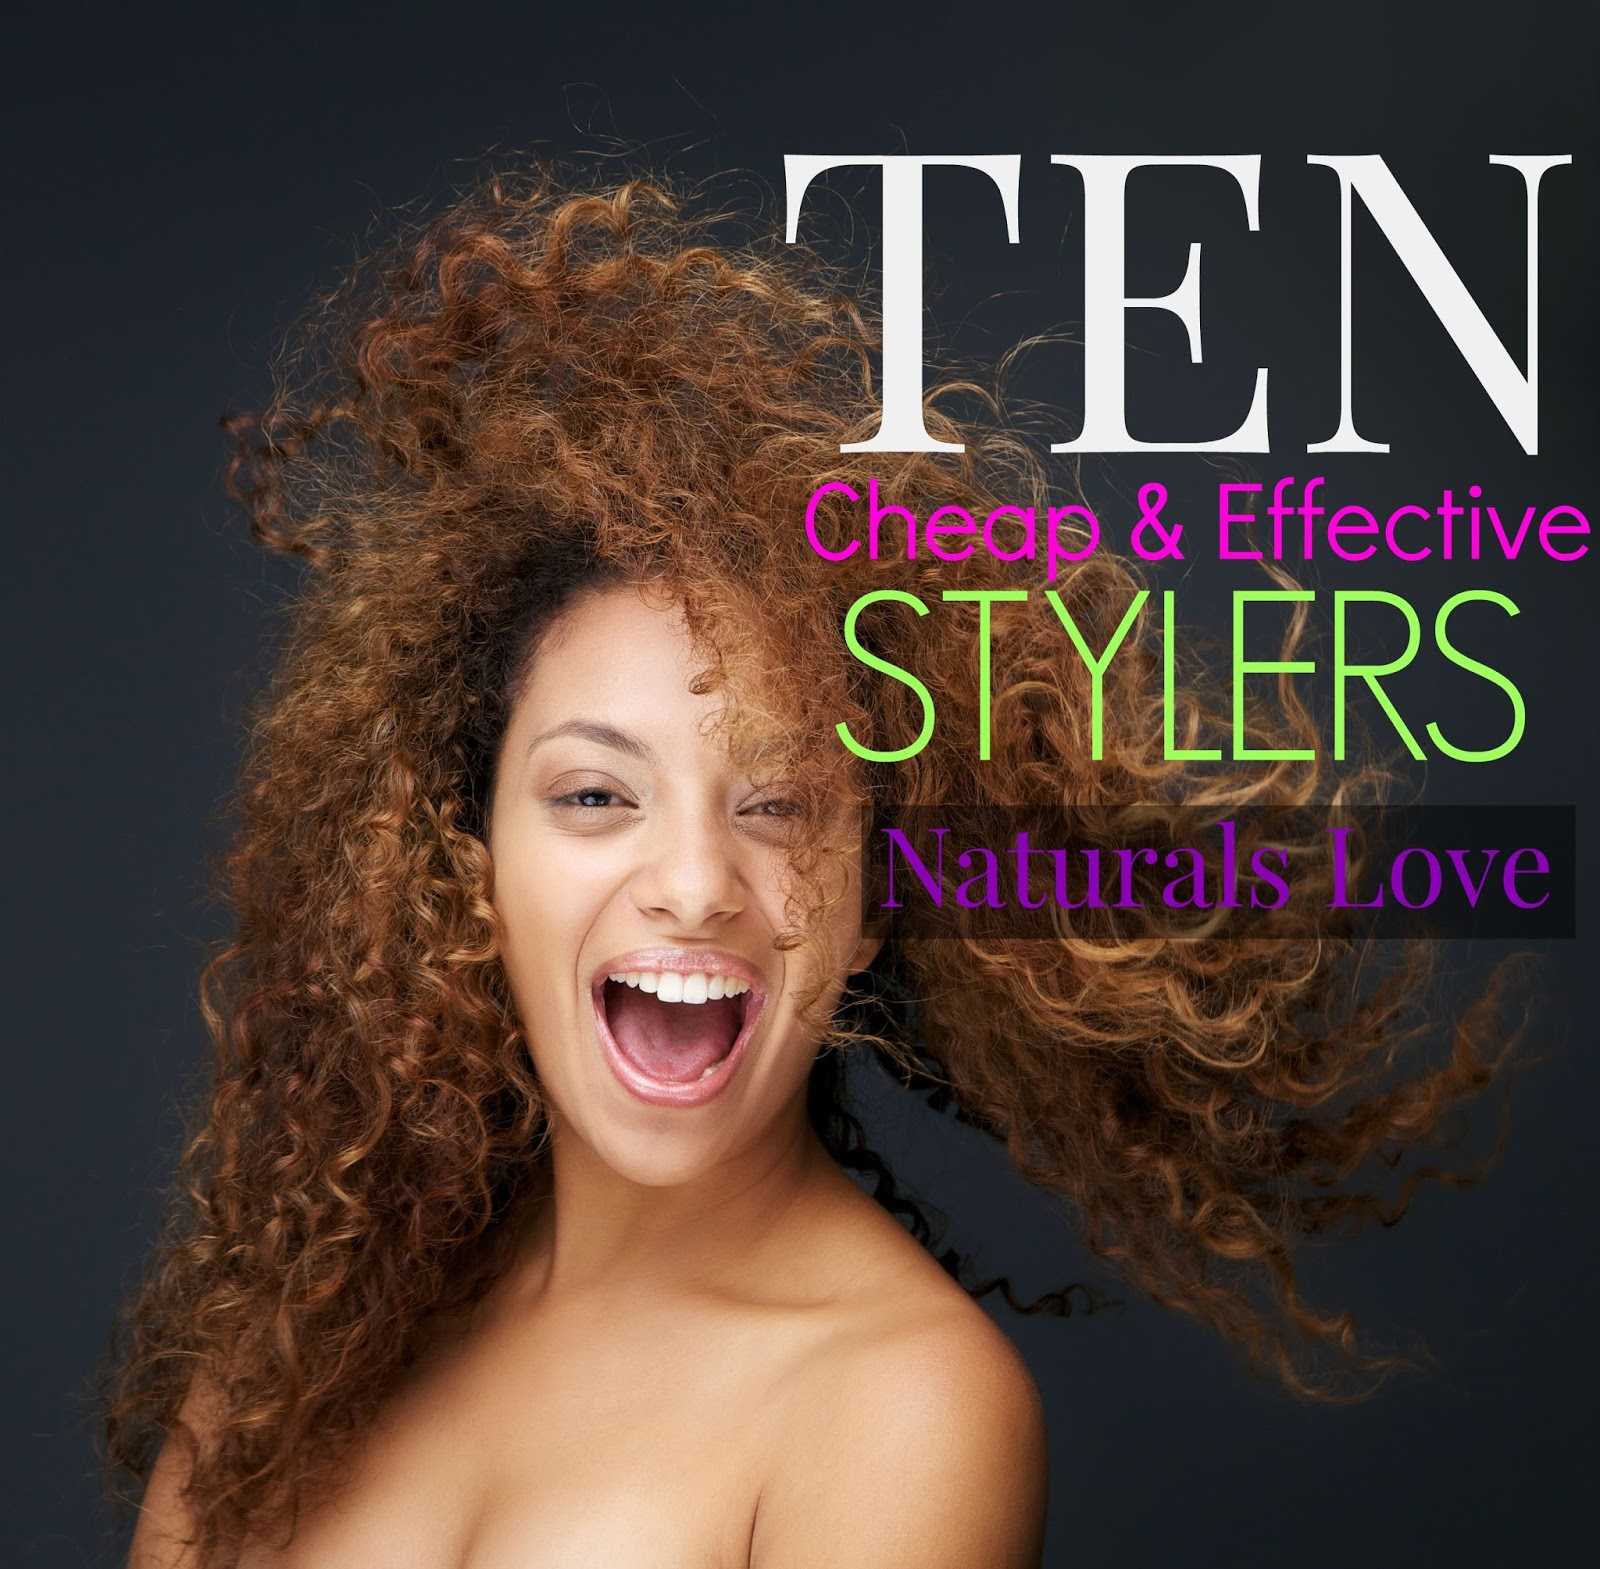 10 Cheap & Effective Stylers Naturals Love